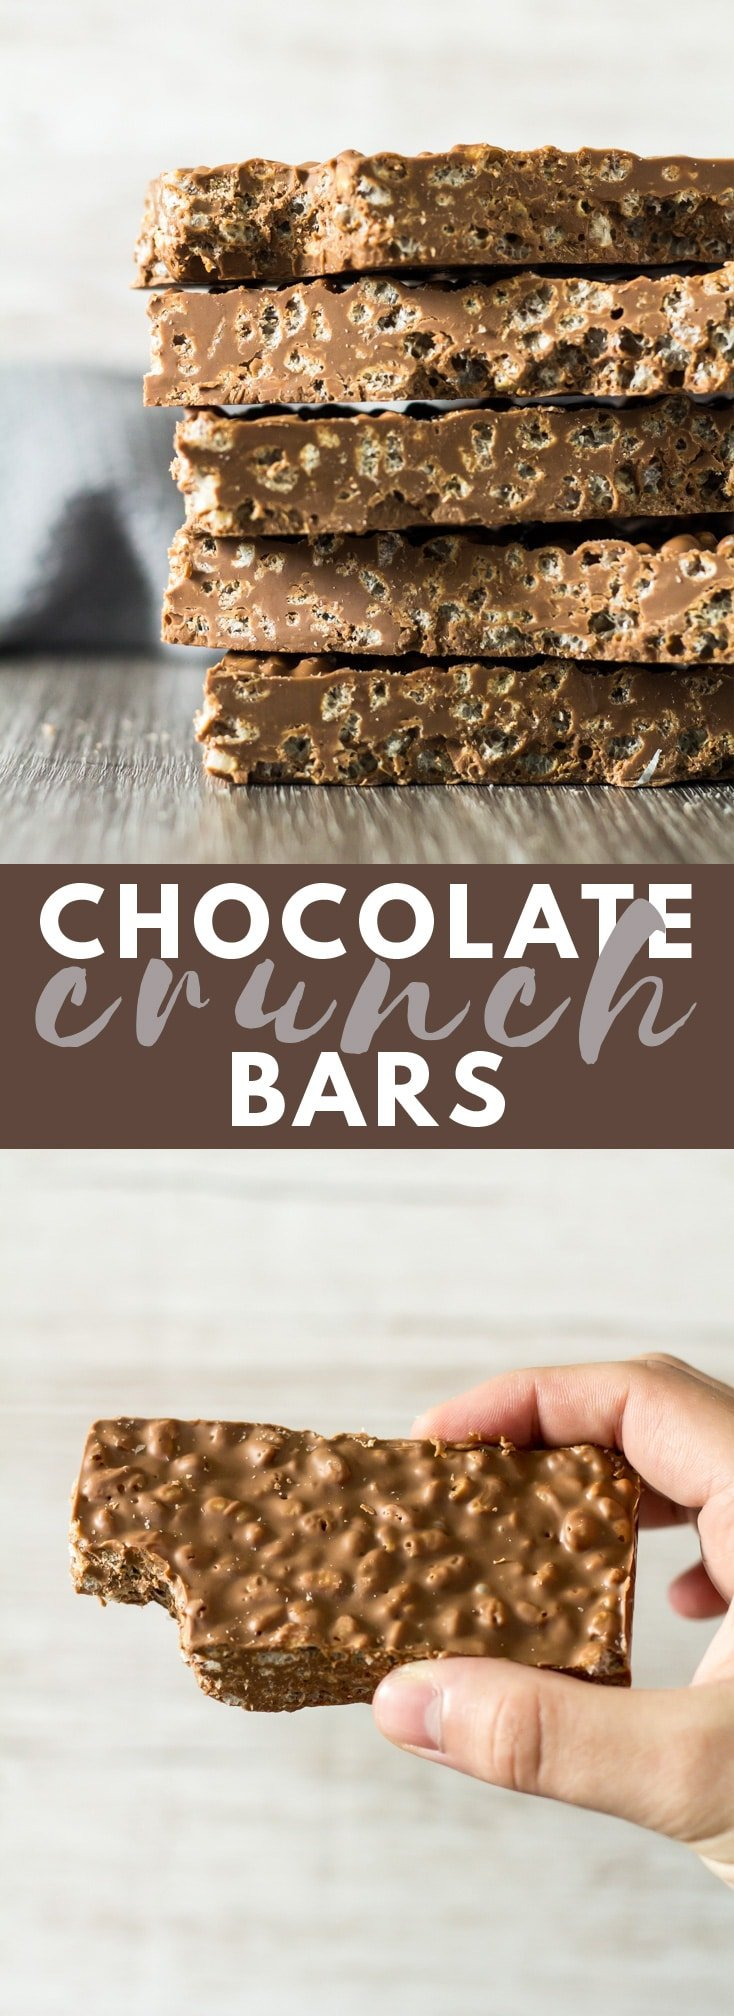 Chocolate Crunch Bars - A deliciously creamy layer of milk chocolate loaded with crispy rice cereal. A 2-ingredient treat you'll want to make time and time again! #chocolate #crunchbars #nobake #recipe